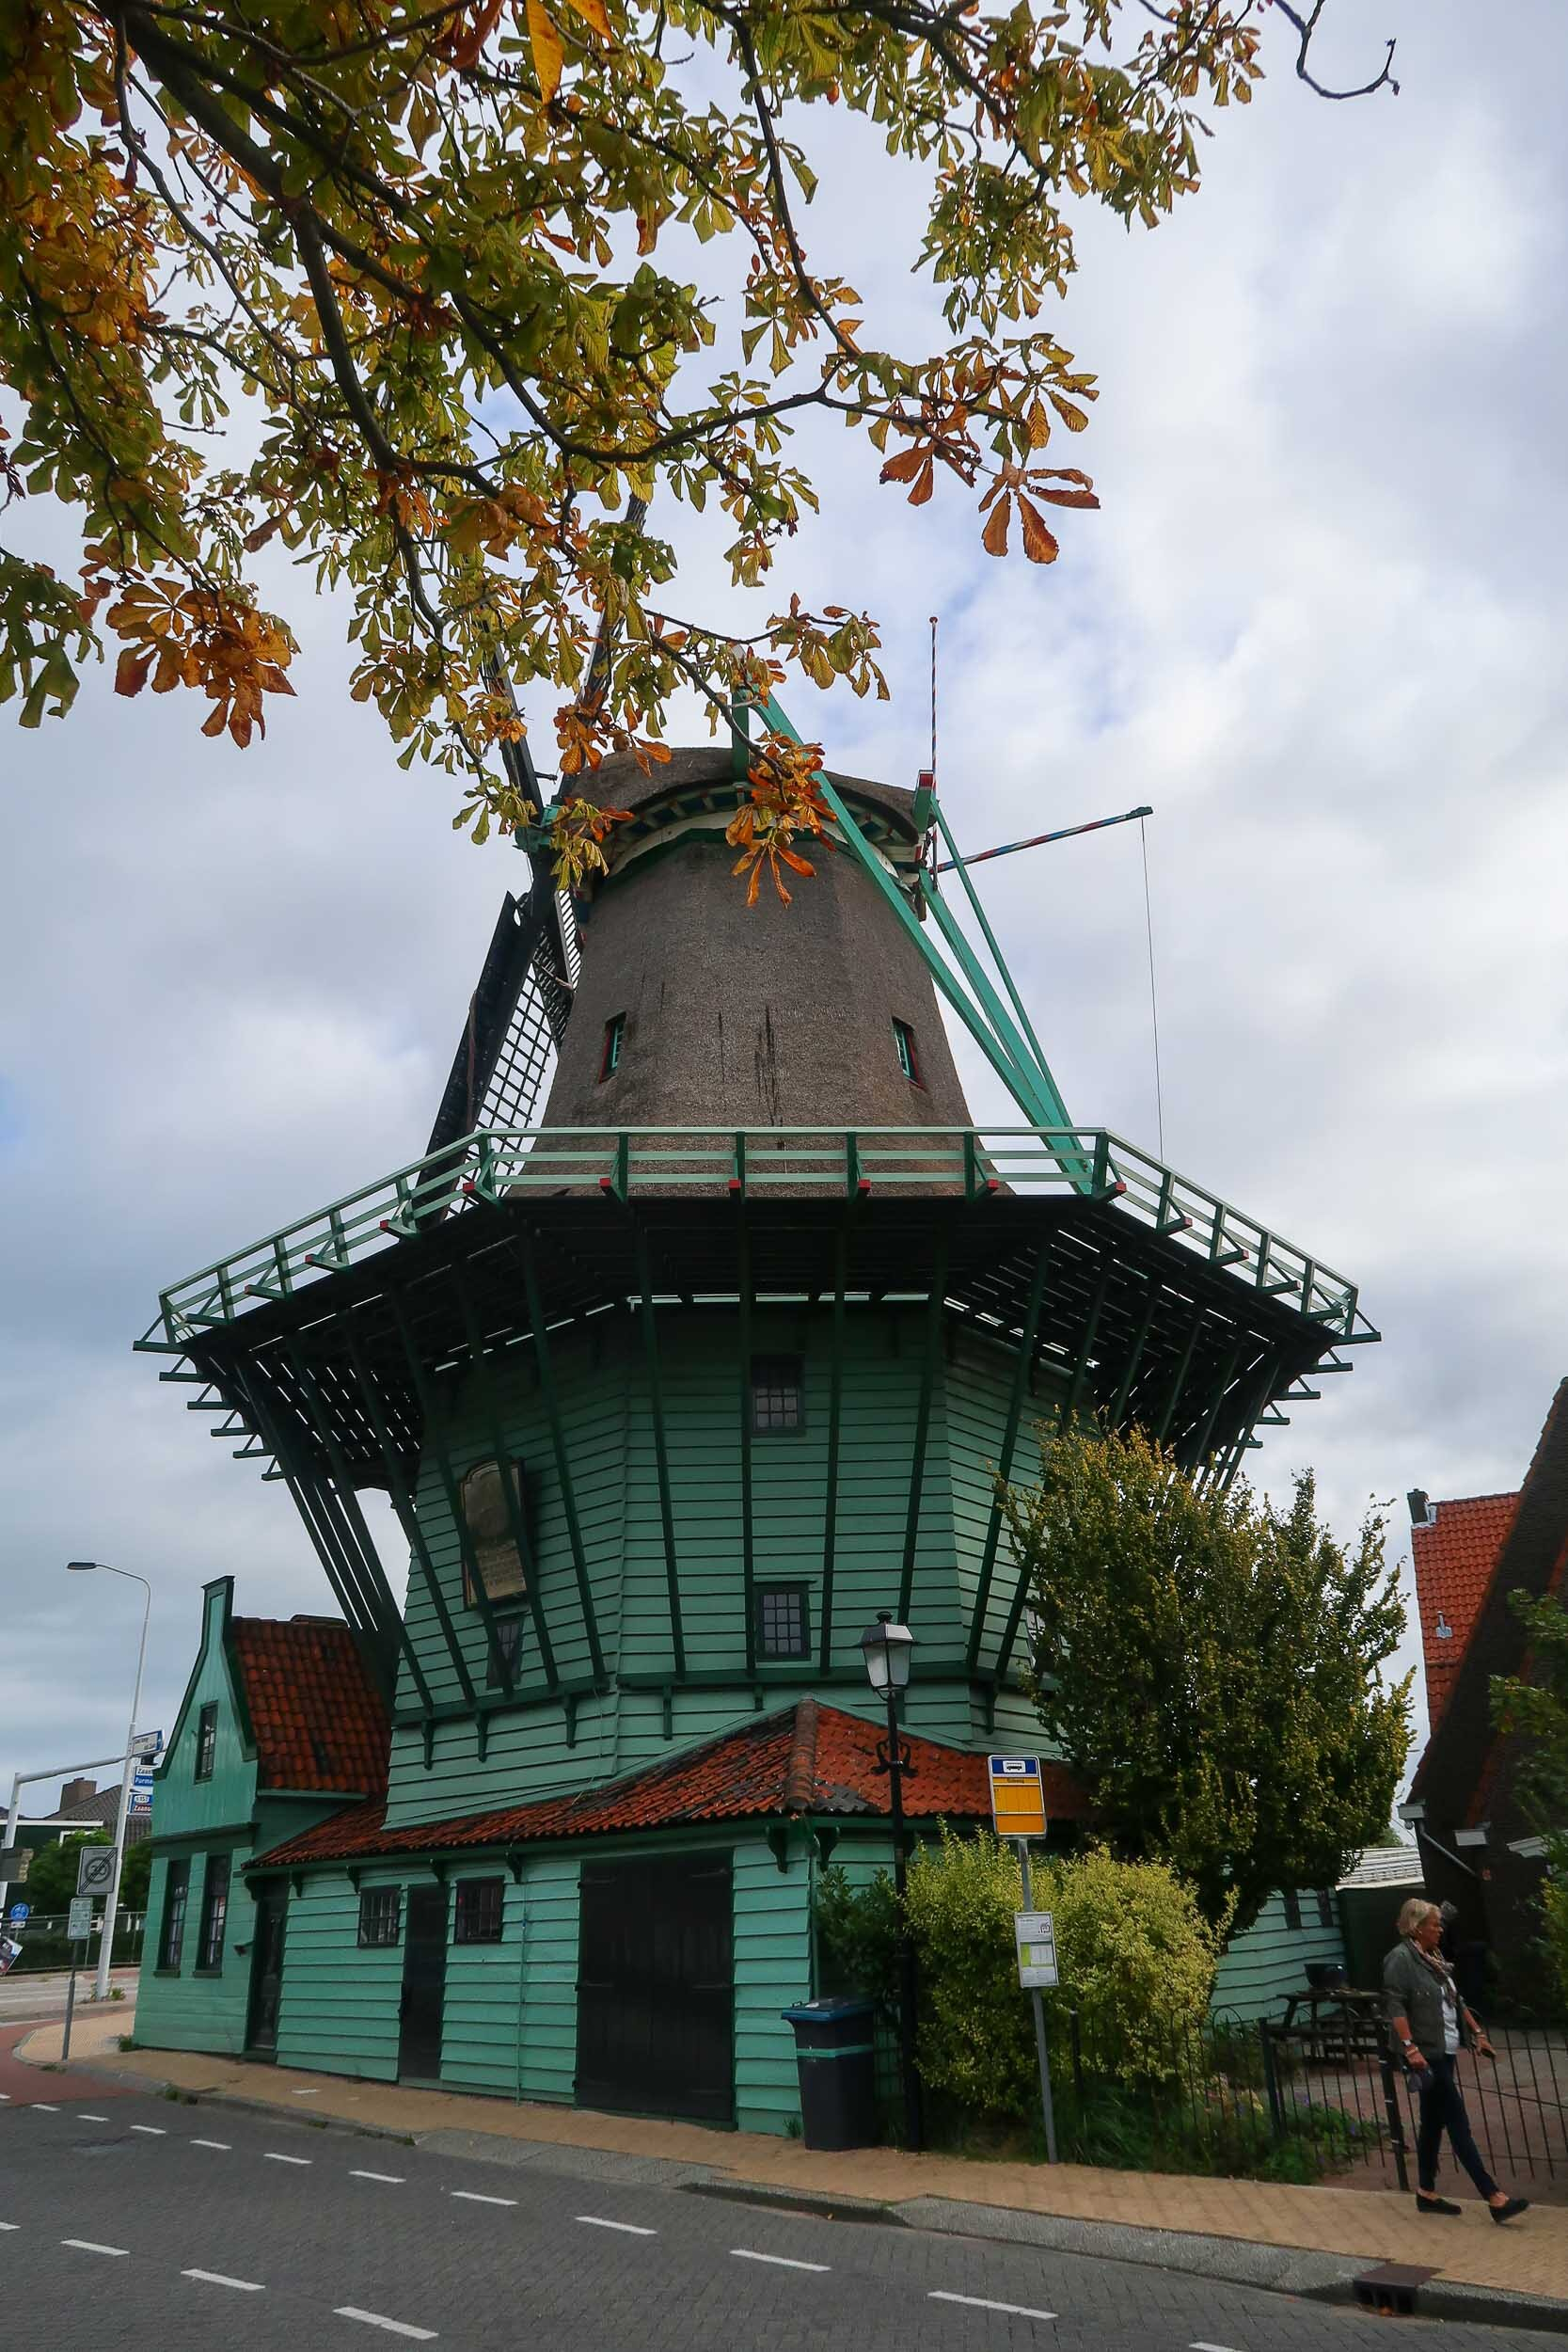 Historic windmills and green houses of Zaanse Schans - everything you need to know when visiting this quiet Dutch village.